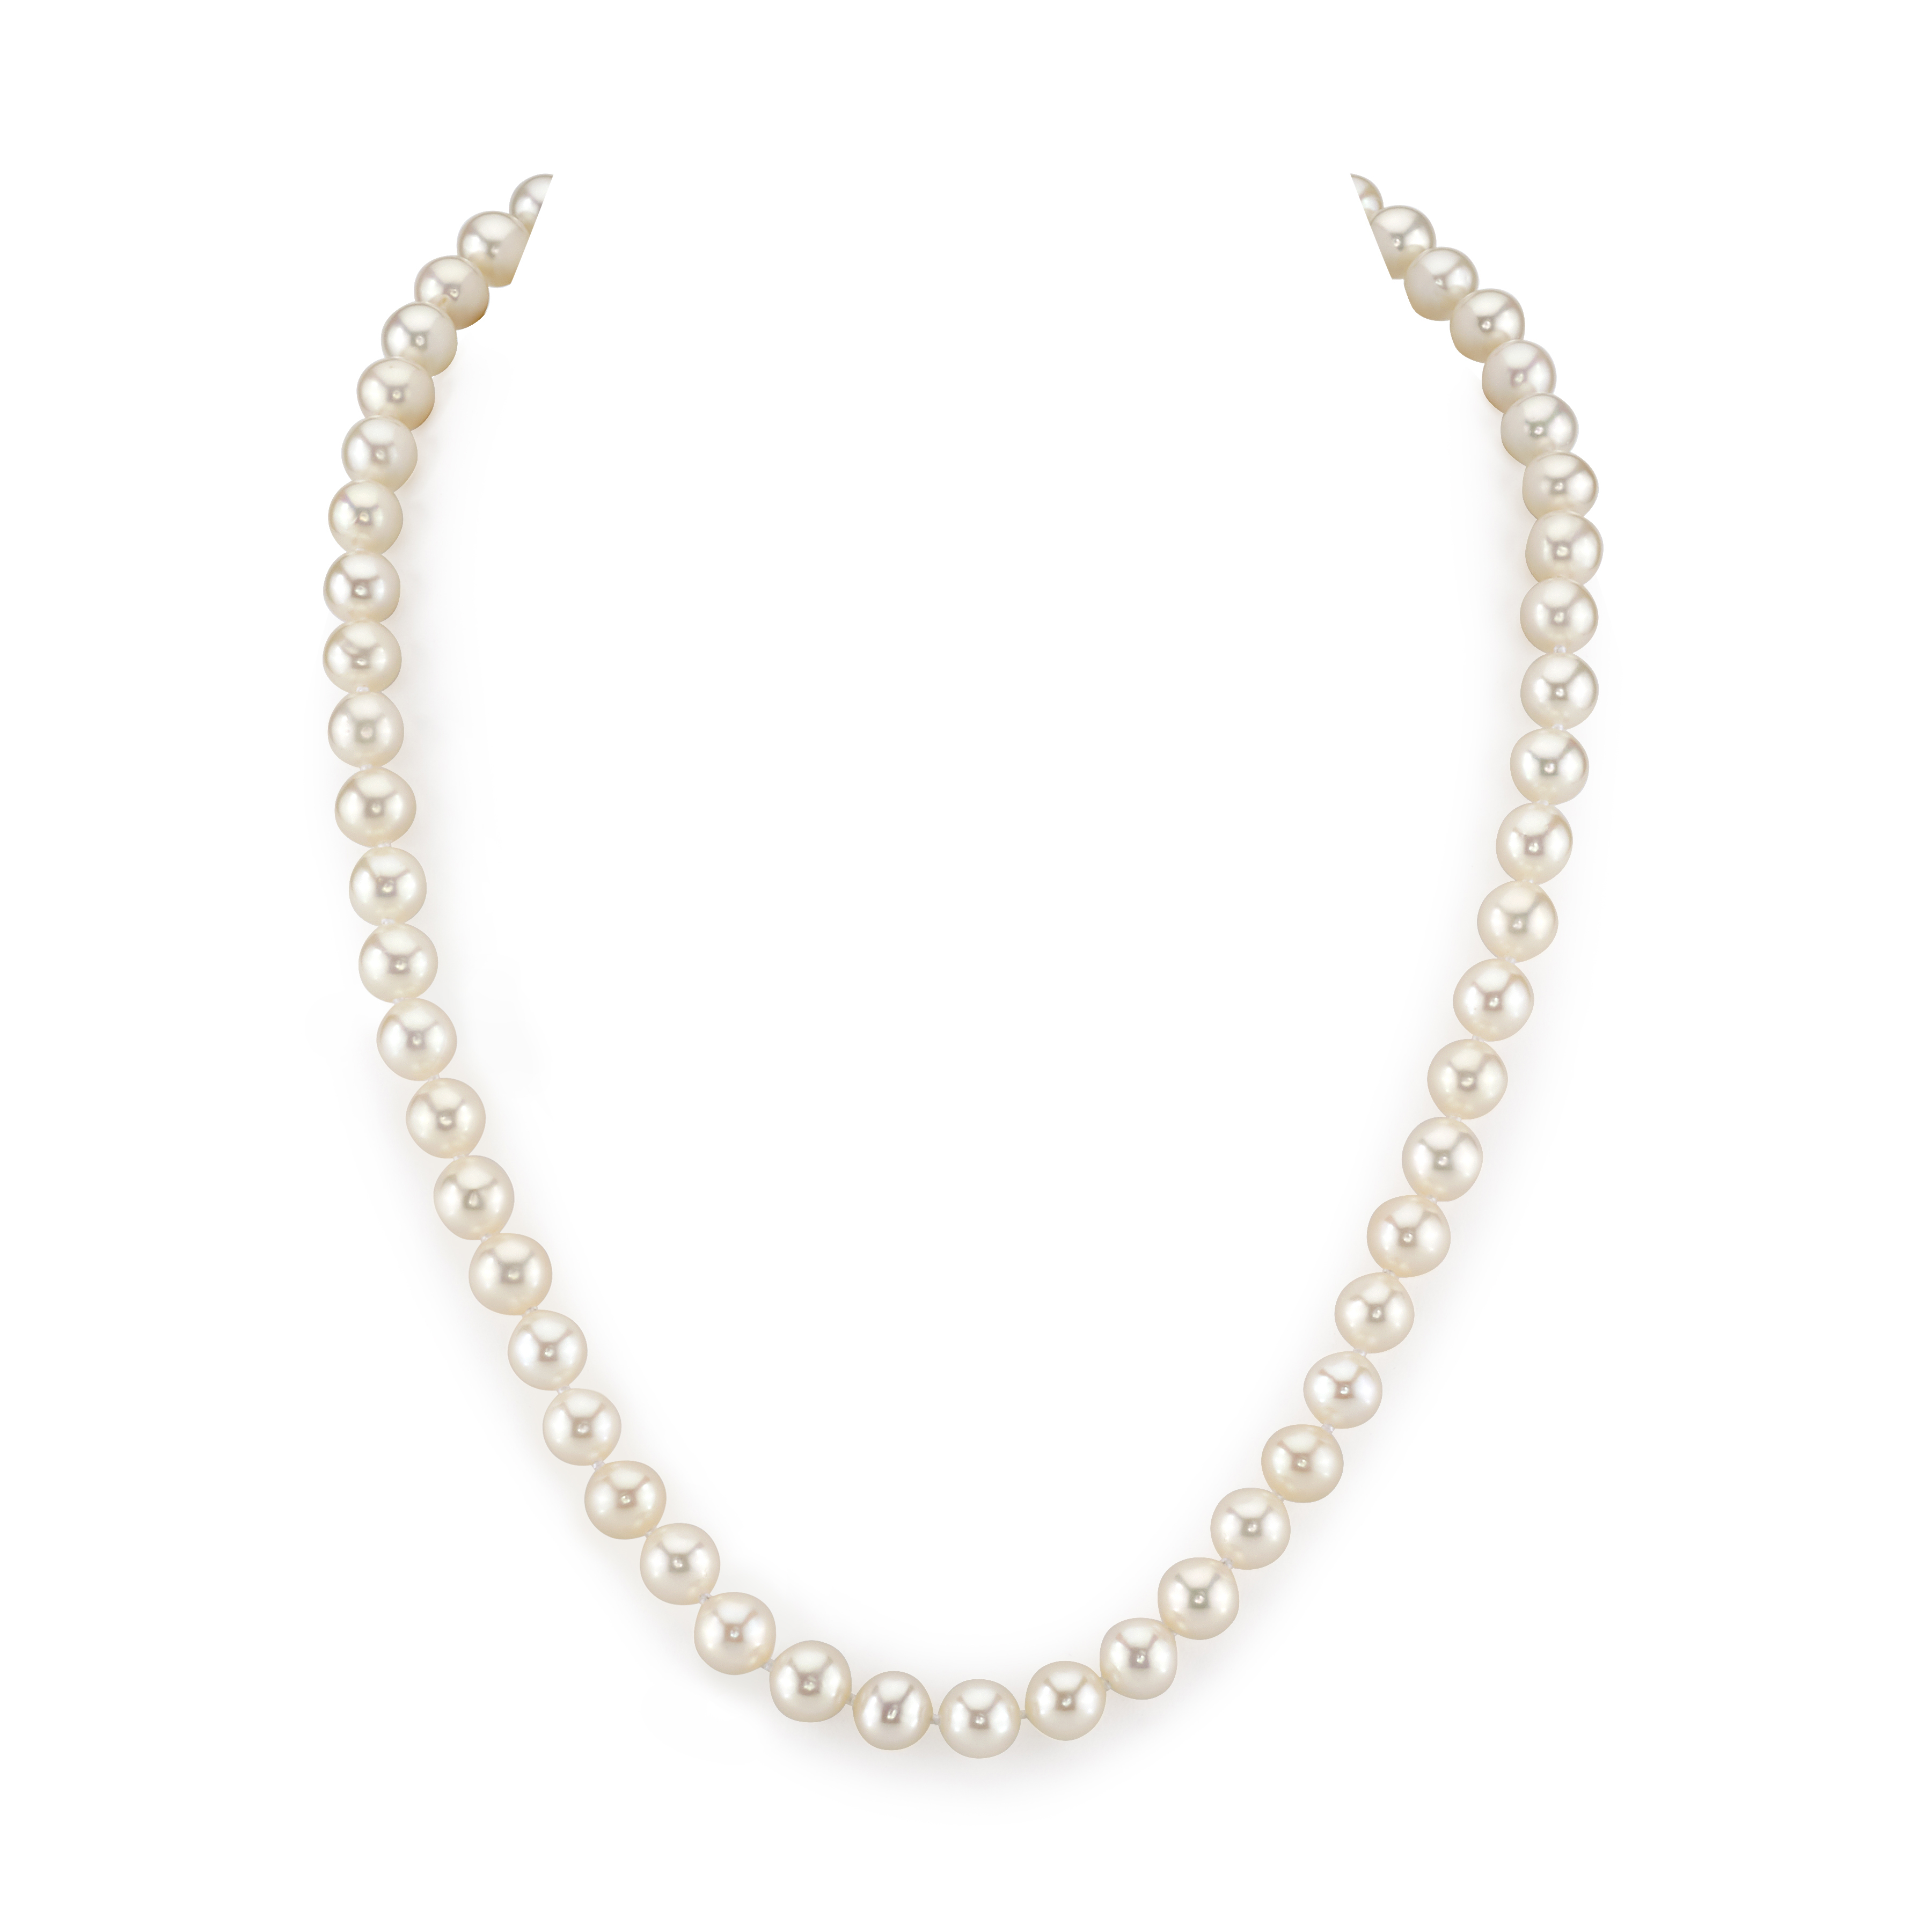 7-8mm White Freshwater Choker Length Pearl Necklace